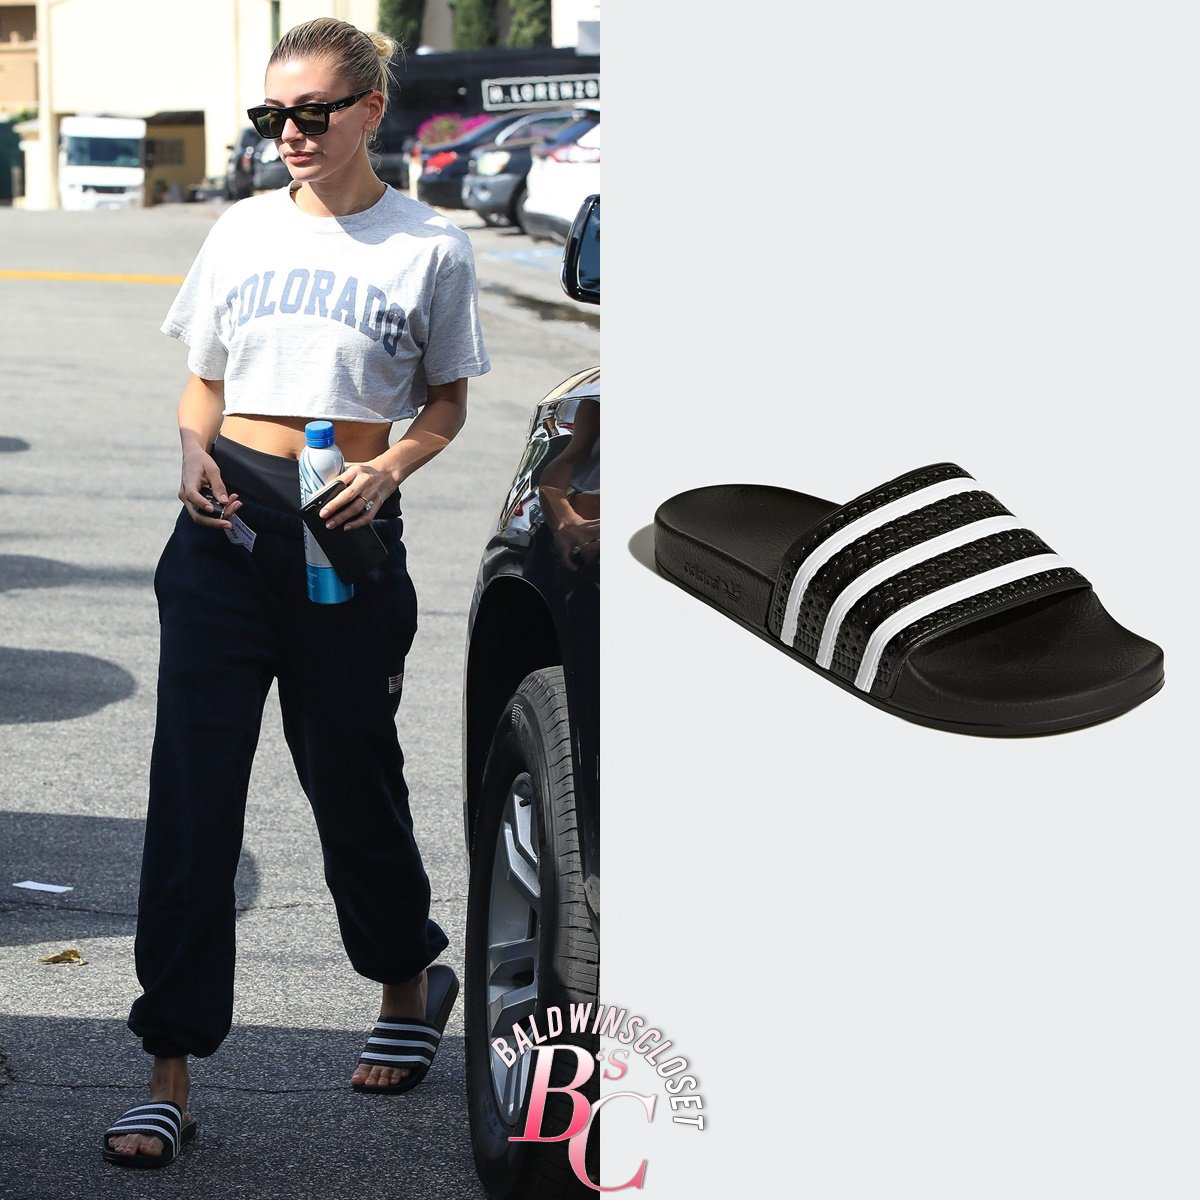 40cc6129c ... it with  Adidas Slides for  45.00 and  Celine Sunnies for  400.00.  http   baldwinscloset.com post 183635995884 march-22-2019-hailey-bieber-was-spotted  … ...